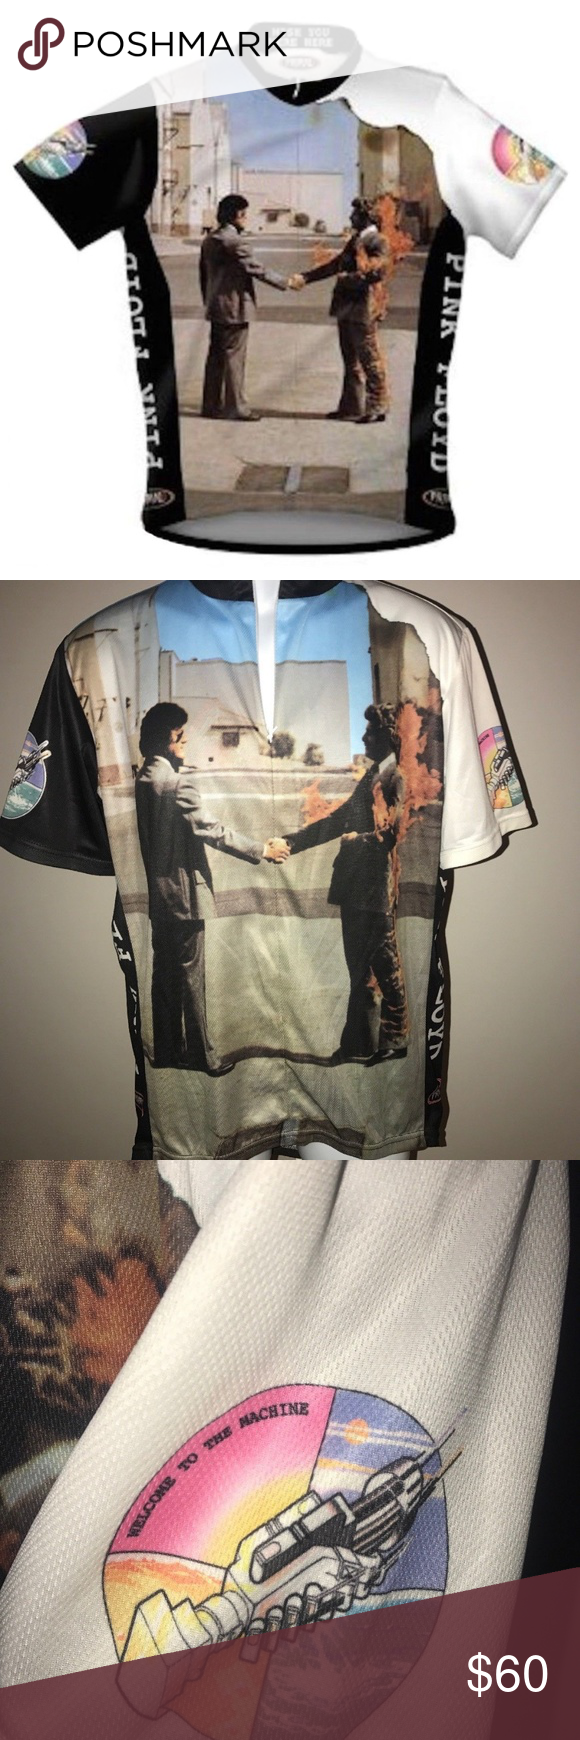 39f8fd709 Primal Wear Pink Floyd Wish You Were Here Cycling Primal Wear Pink Floyd  Wish You Were Here Cycling Jersey Men s XL NWT Primal Shirts